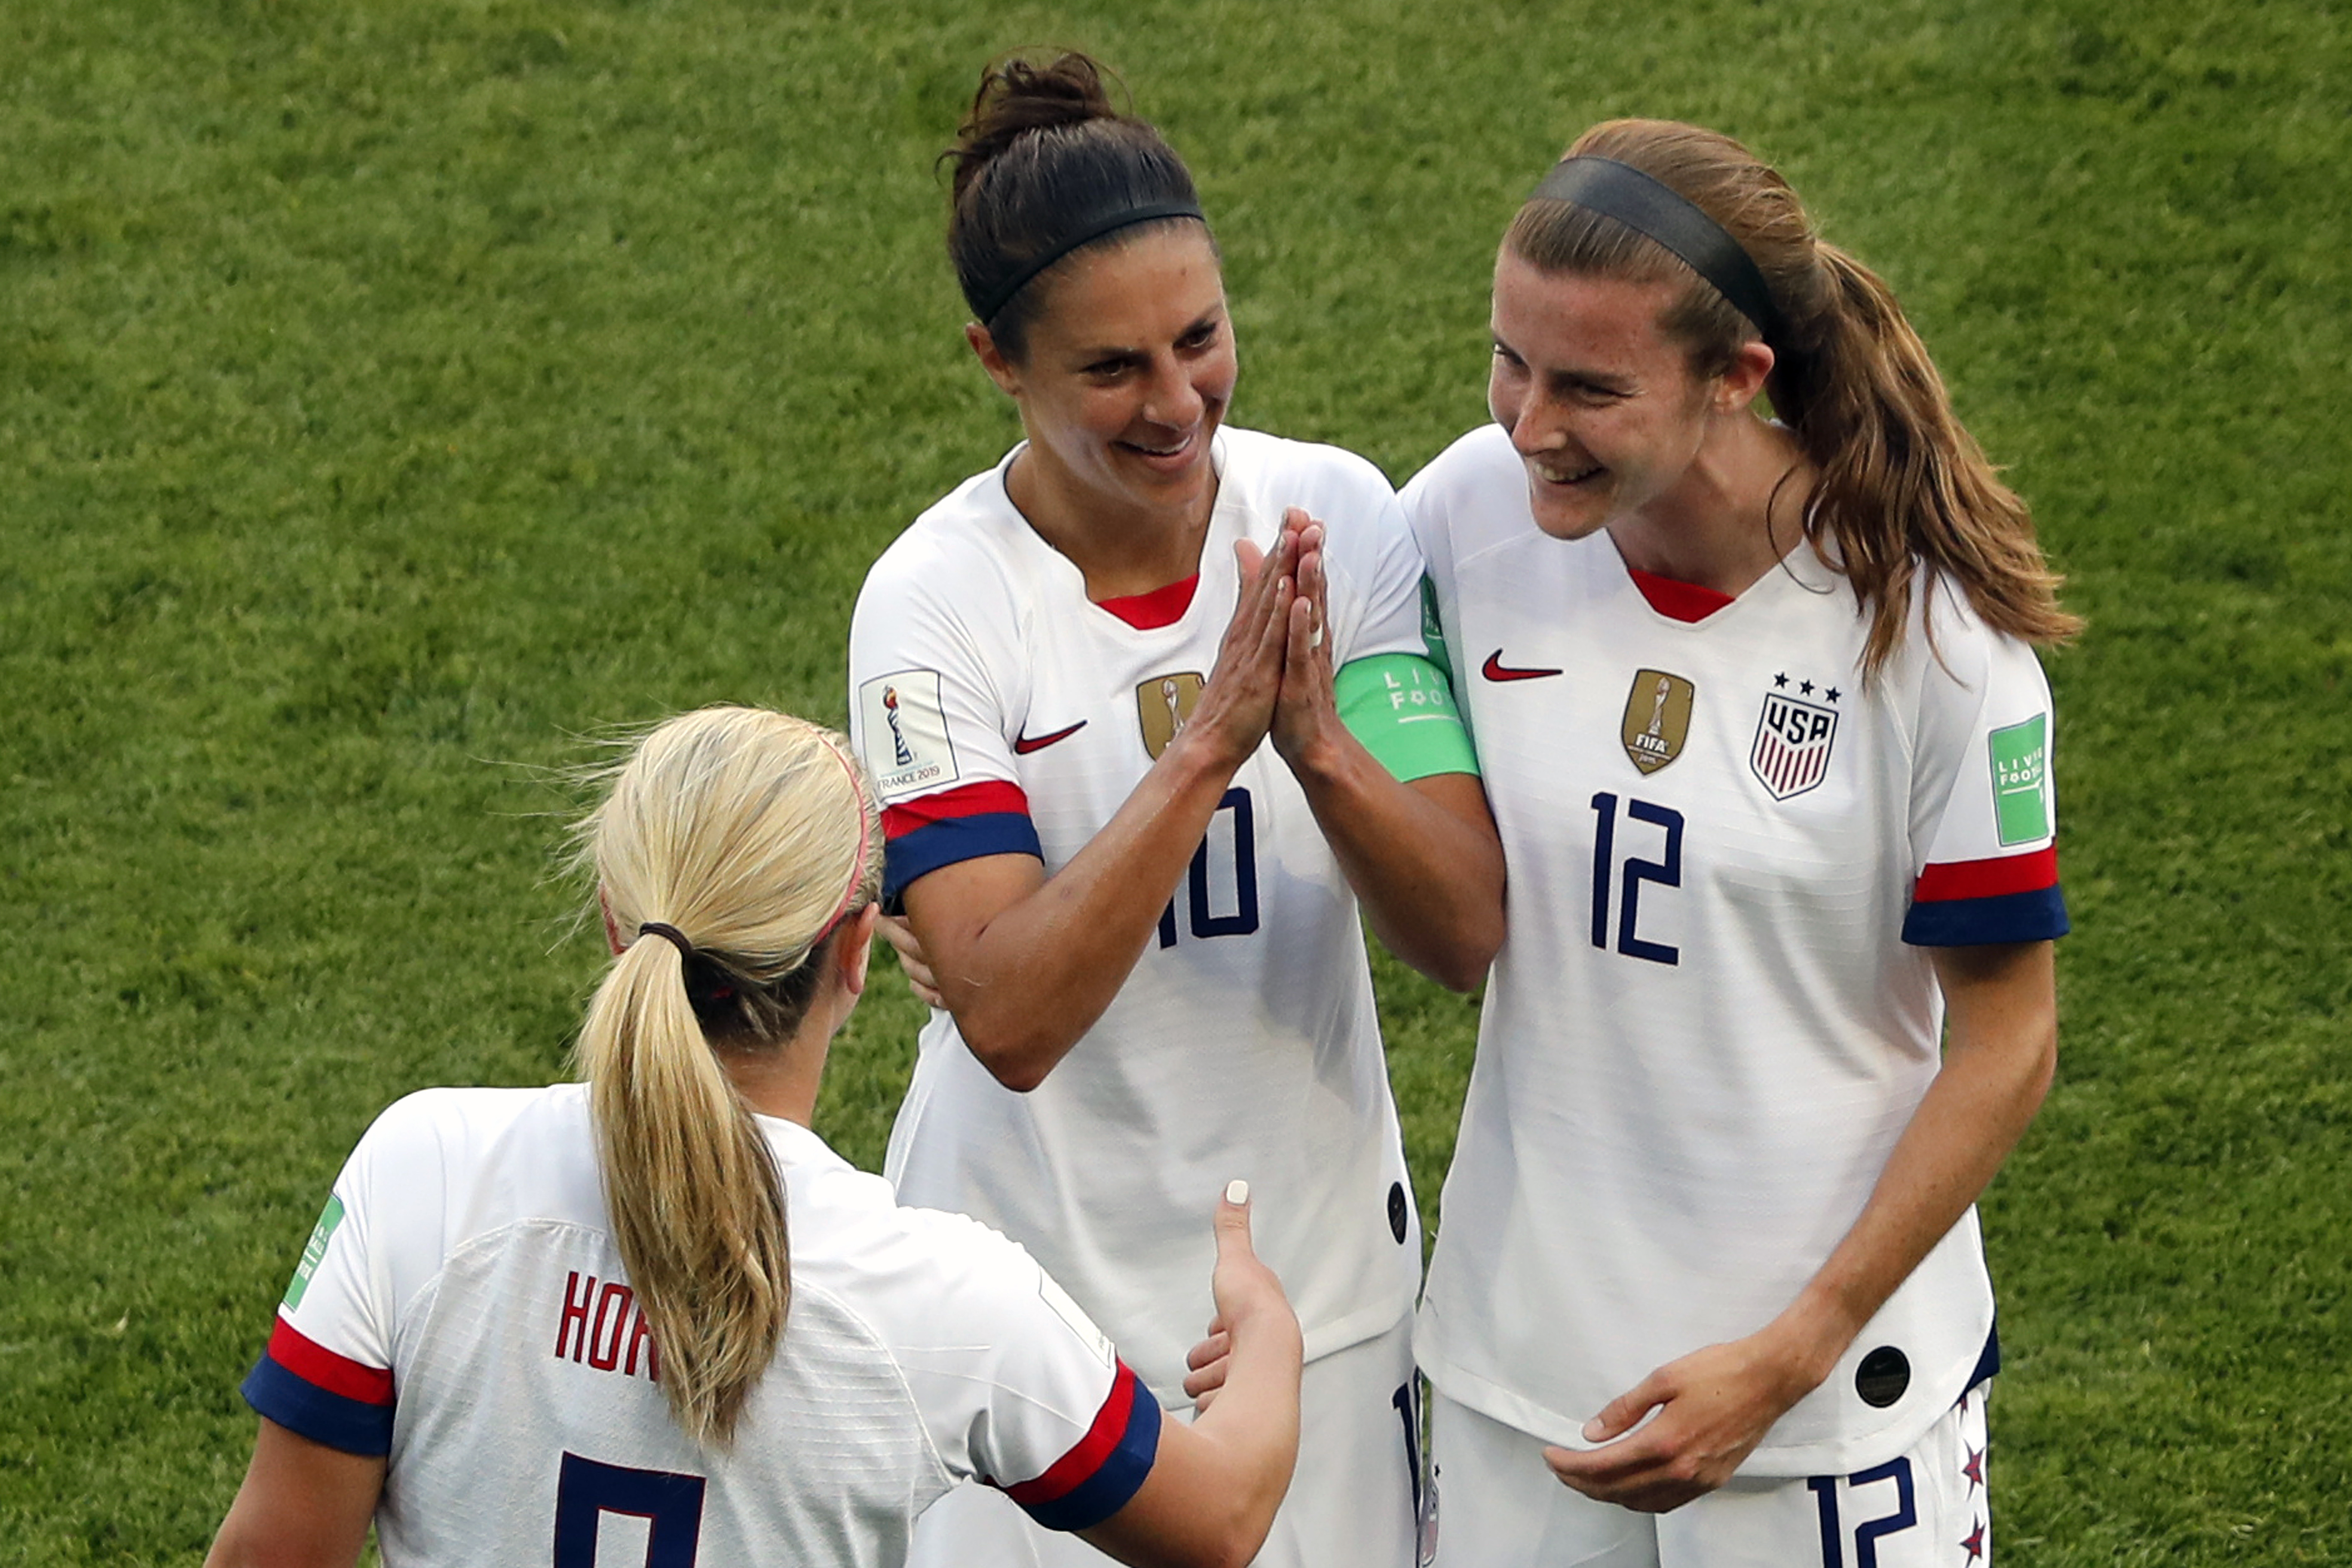 US wants win vs Swedes, even if it would mean tougher path